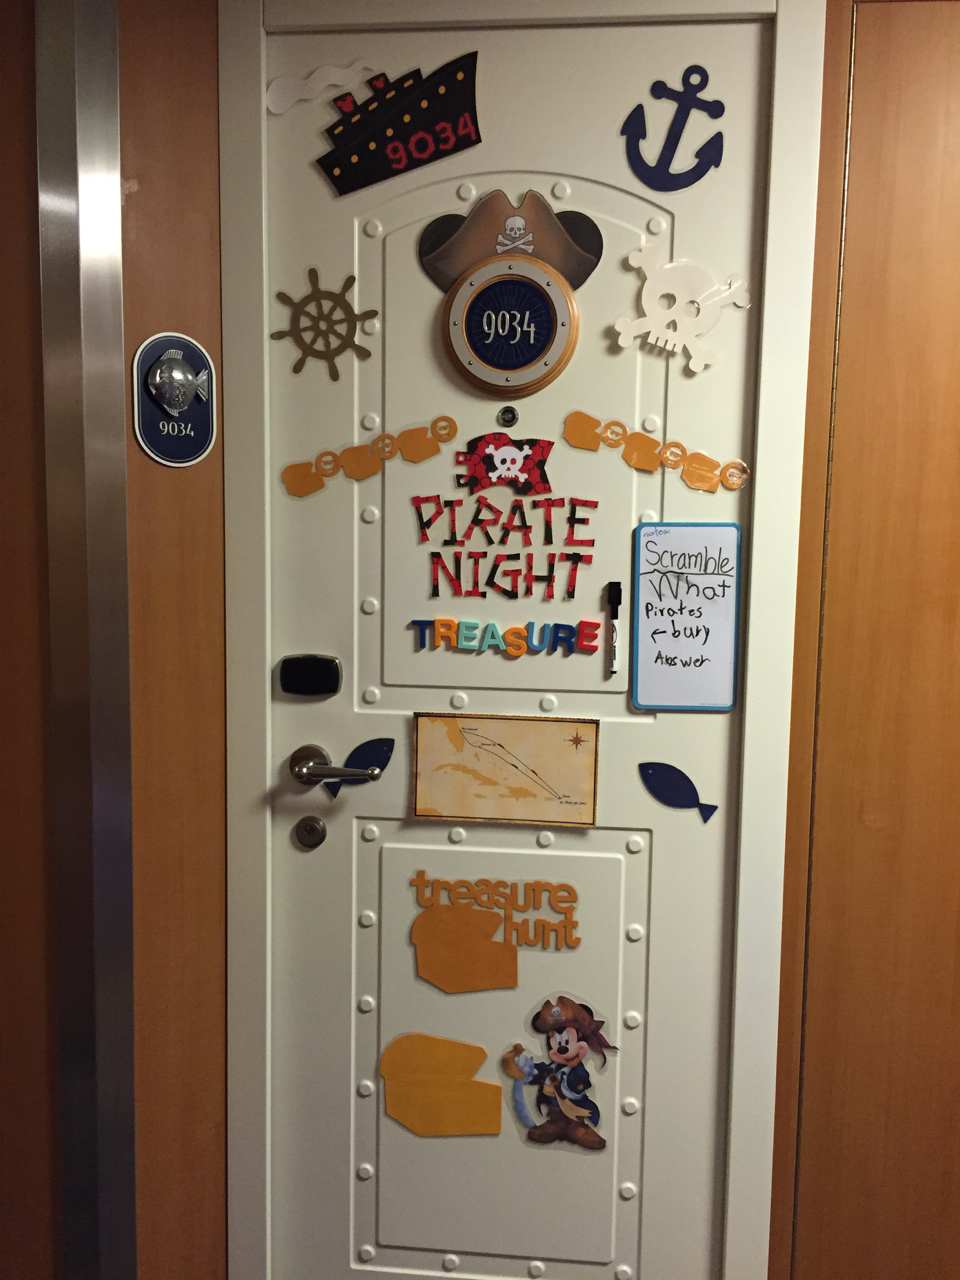 Disney Fantasy Cruise - Tortola Pirate Night Door